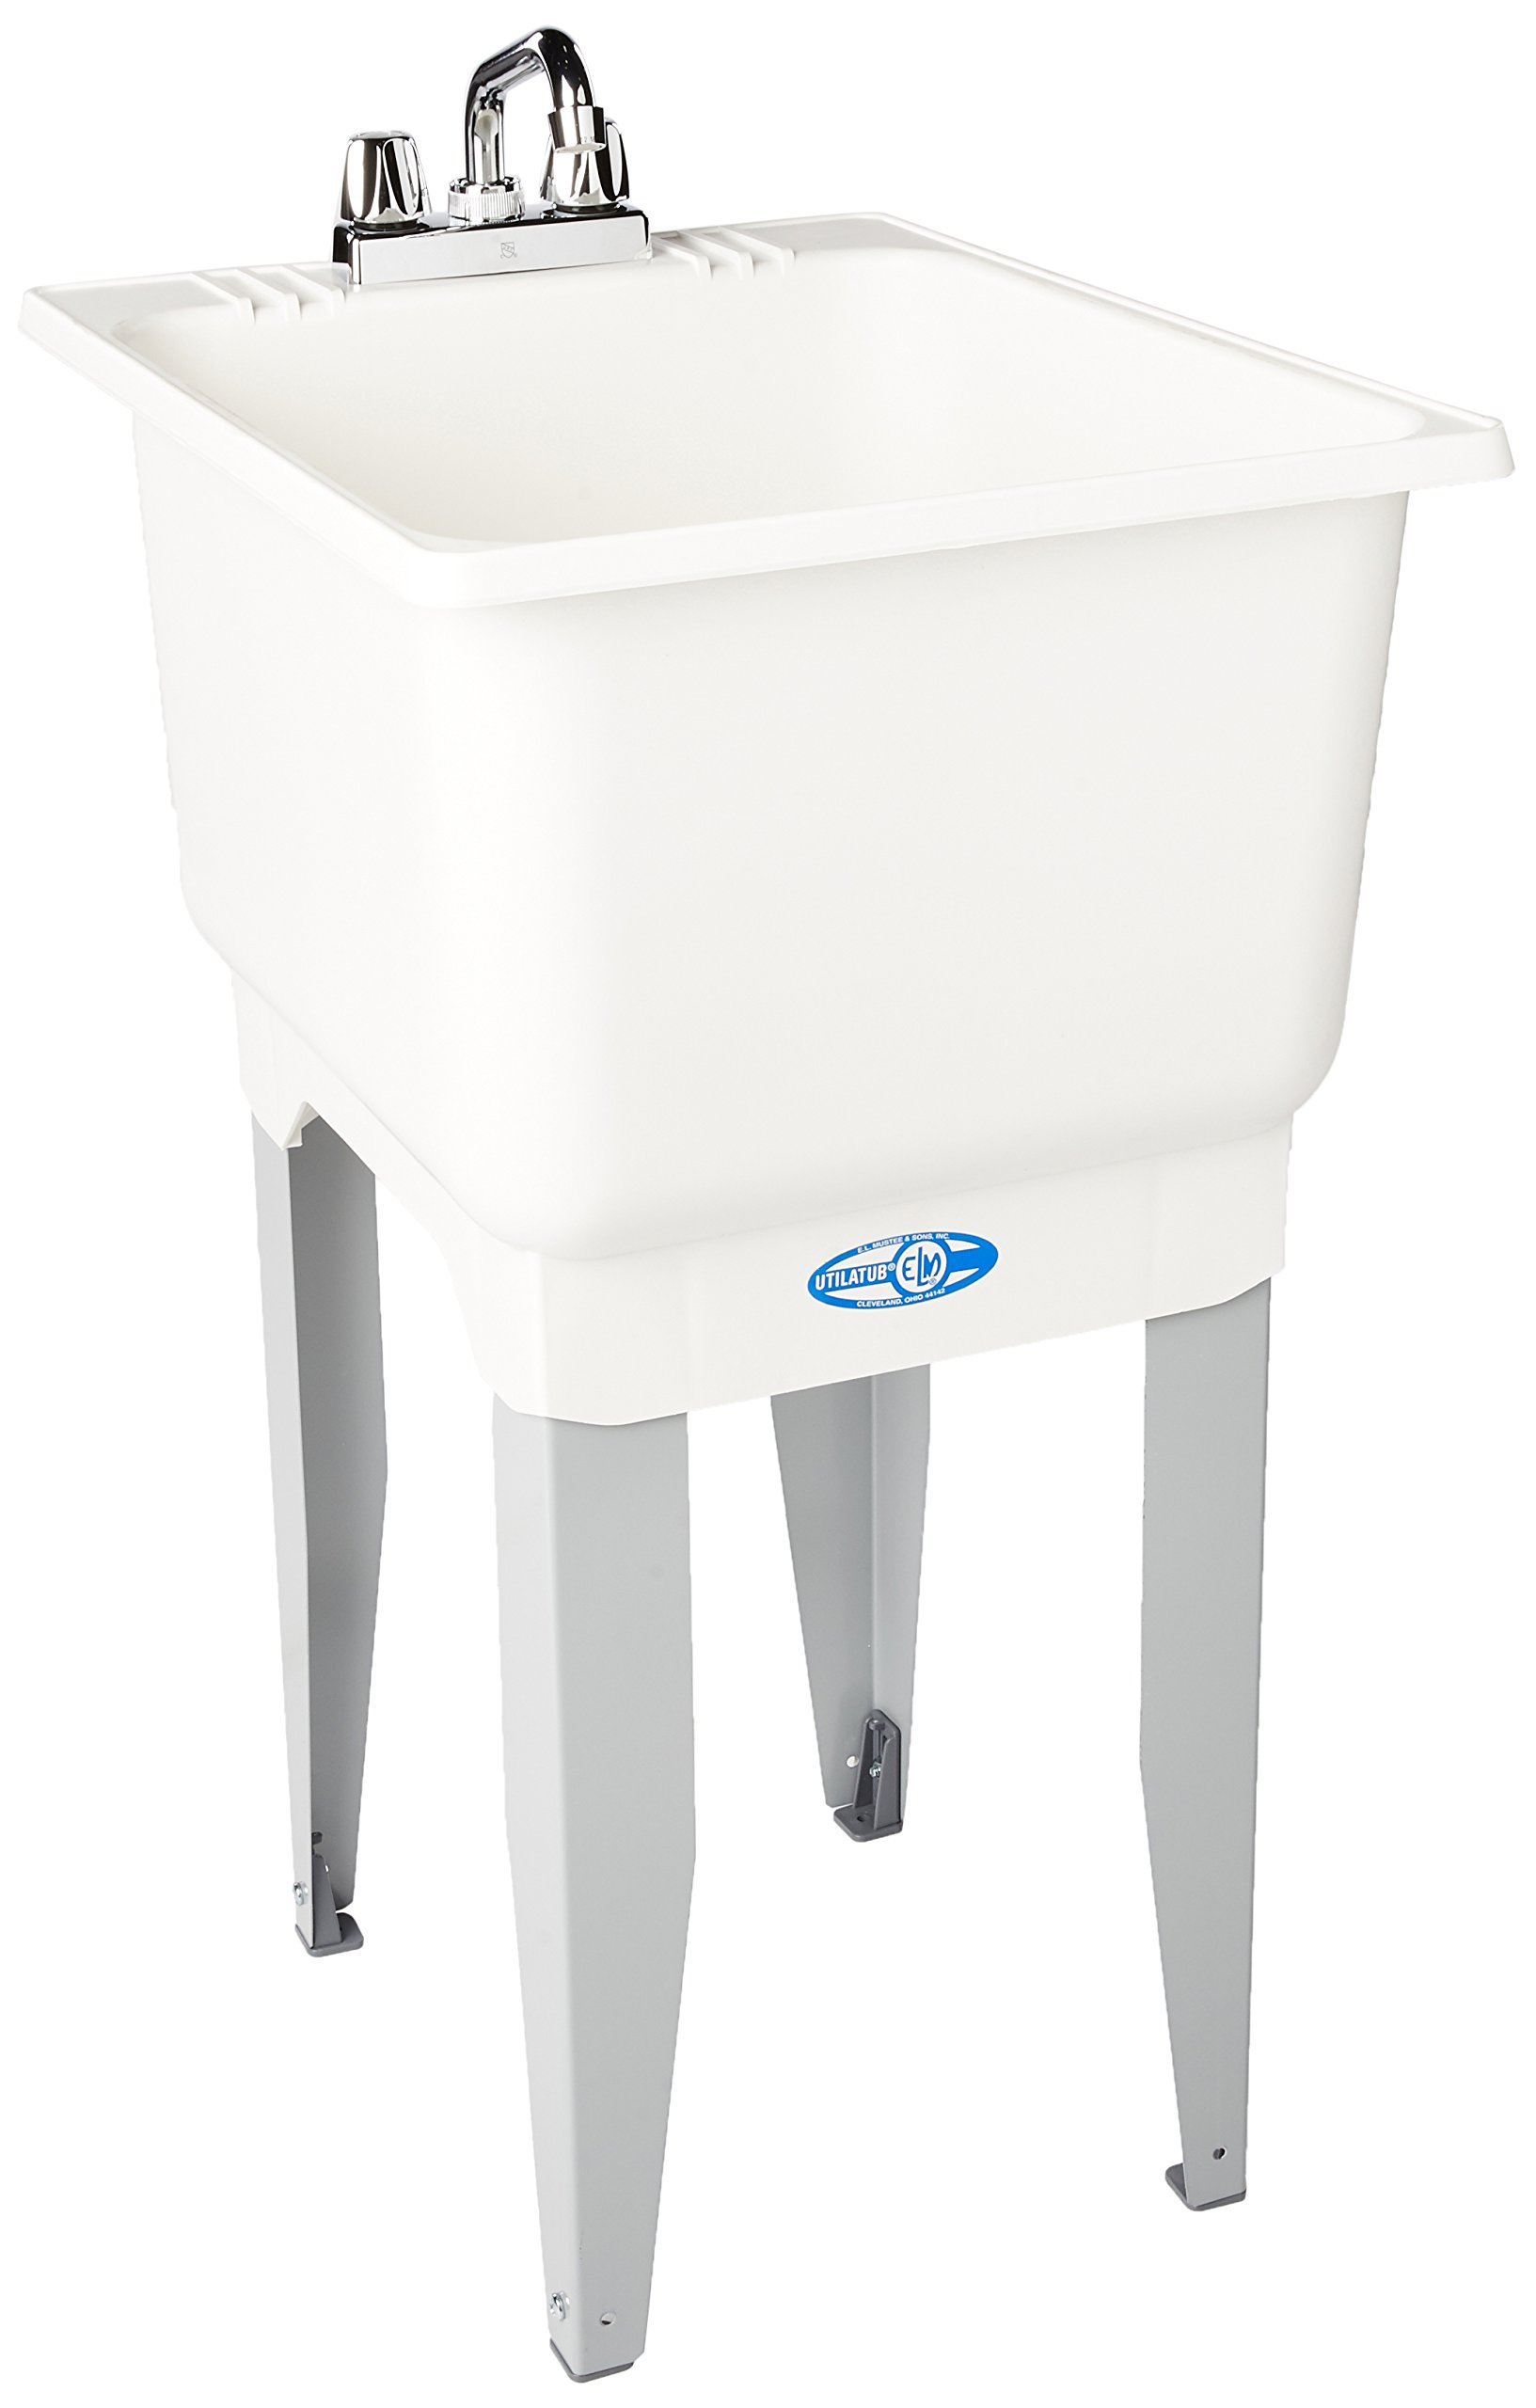 El Mustee 12C Utilatub 15-Gallon Floor-Mount Combo Laundry/Utility Tub, 33 X 18 X 23-1/2 In, White by El Mustee